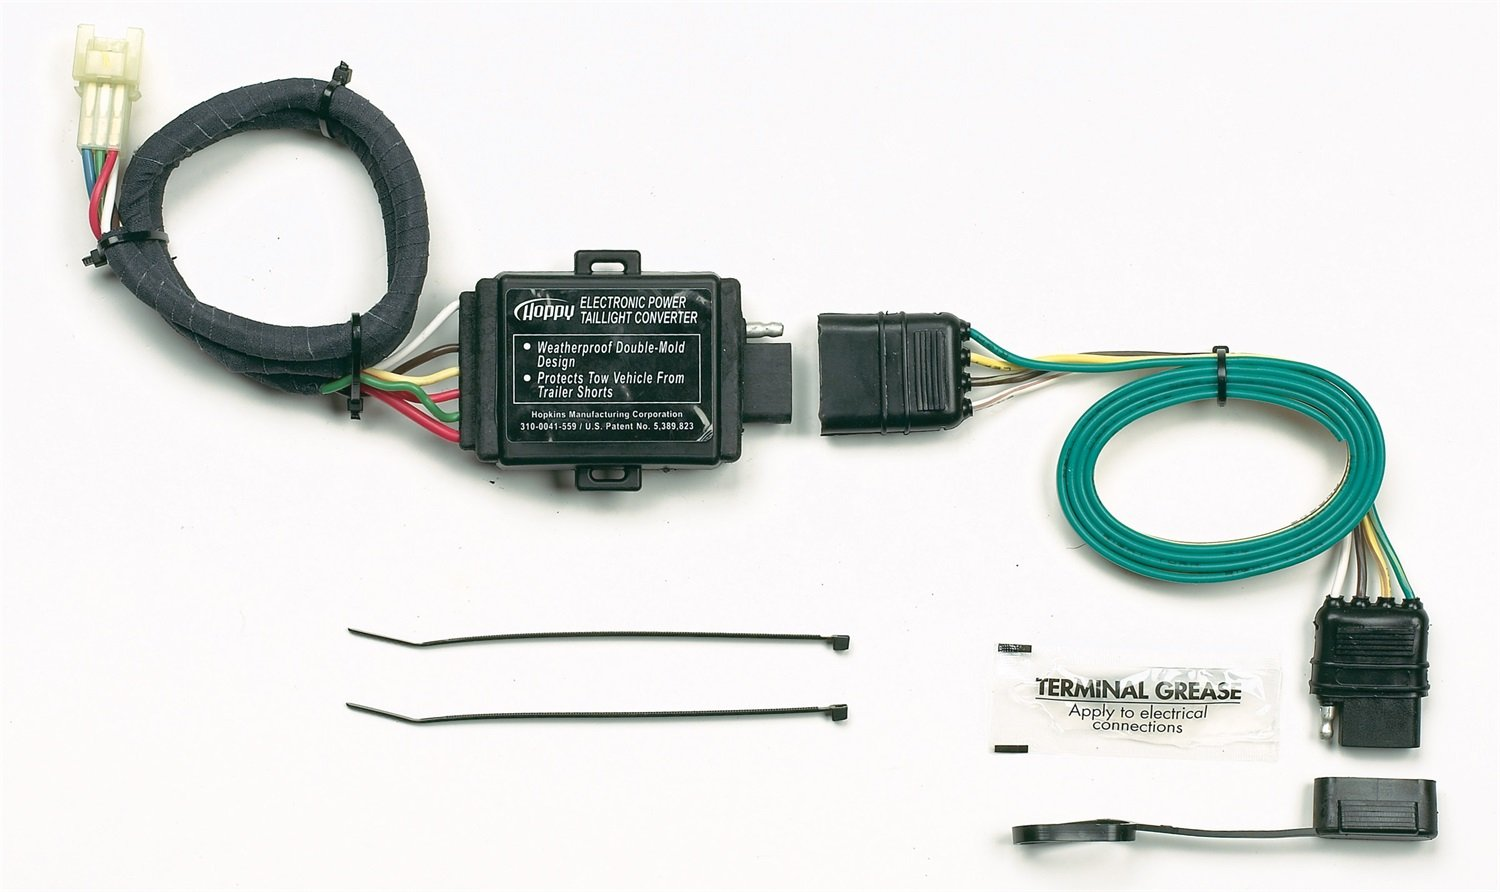 Amazon.com: Hopkins 43855 Plug-In Simple Vehicle Wiring Kit ... on push button starter installation diagram, trailer tires diagram, trailer brakes, trailer lights, trailer frame diagram, trailer battery diagram, trailer schematic, trailer hitches diagram, circuit diagram, truck cap locks diagram, cable harness diagram, trailer batteries diagram, trailer motor diagram, trailer parts, trailer connector diagram,